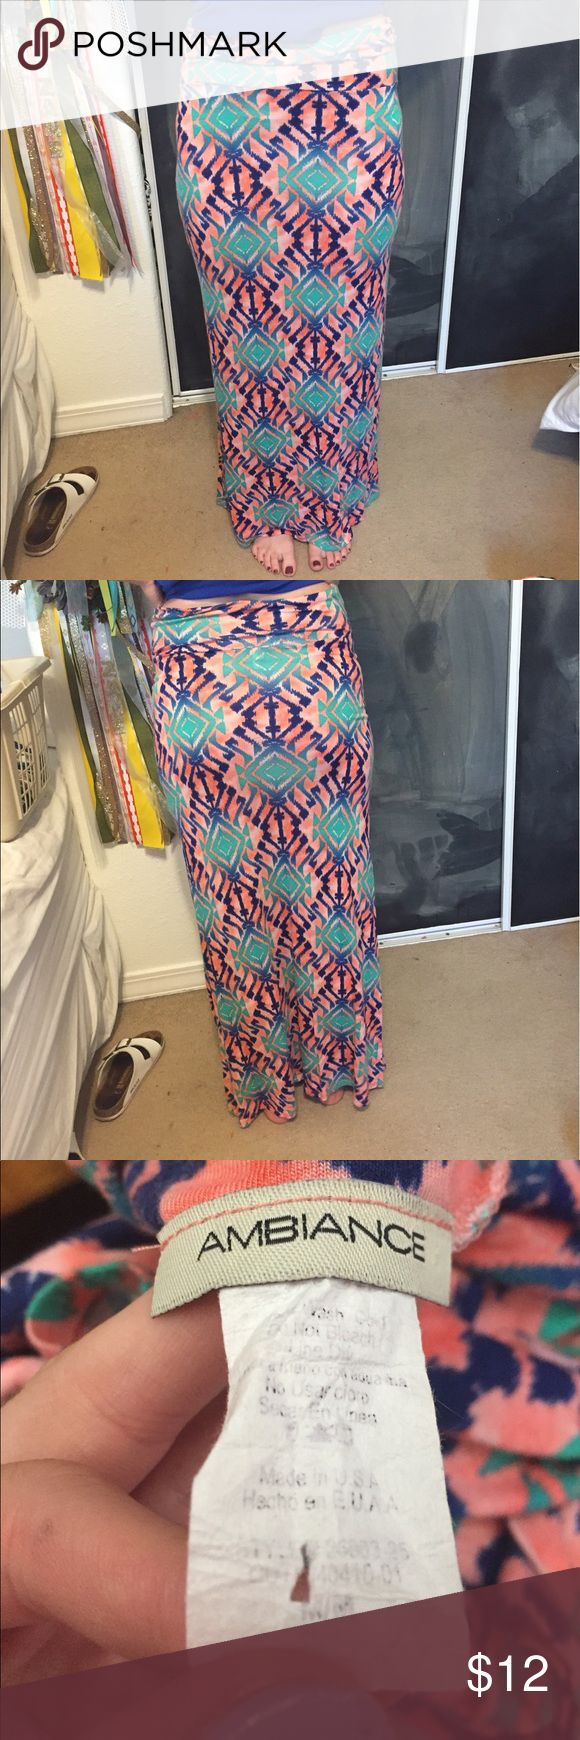 aztec maxi skirt aztec maxi skirt. SO soft and wearable. comfy and can be dressed up or down. coral, navy and kelly green Ambiance Apparel Skirts Maxi